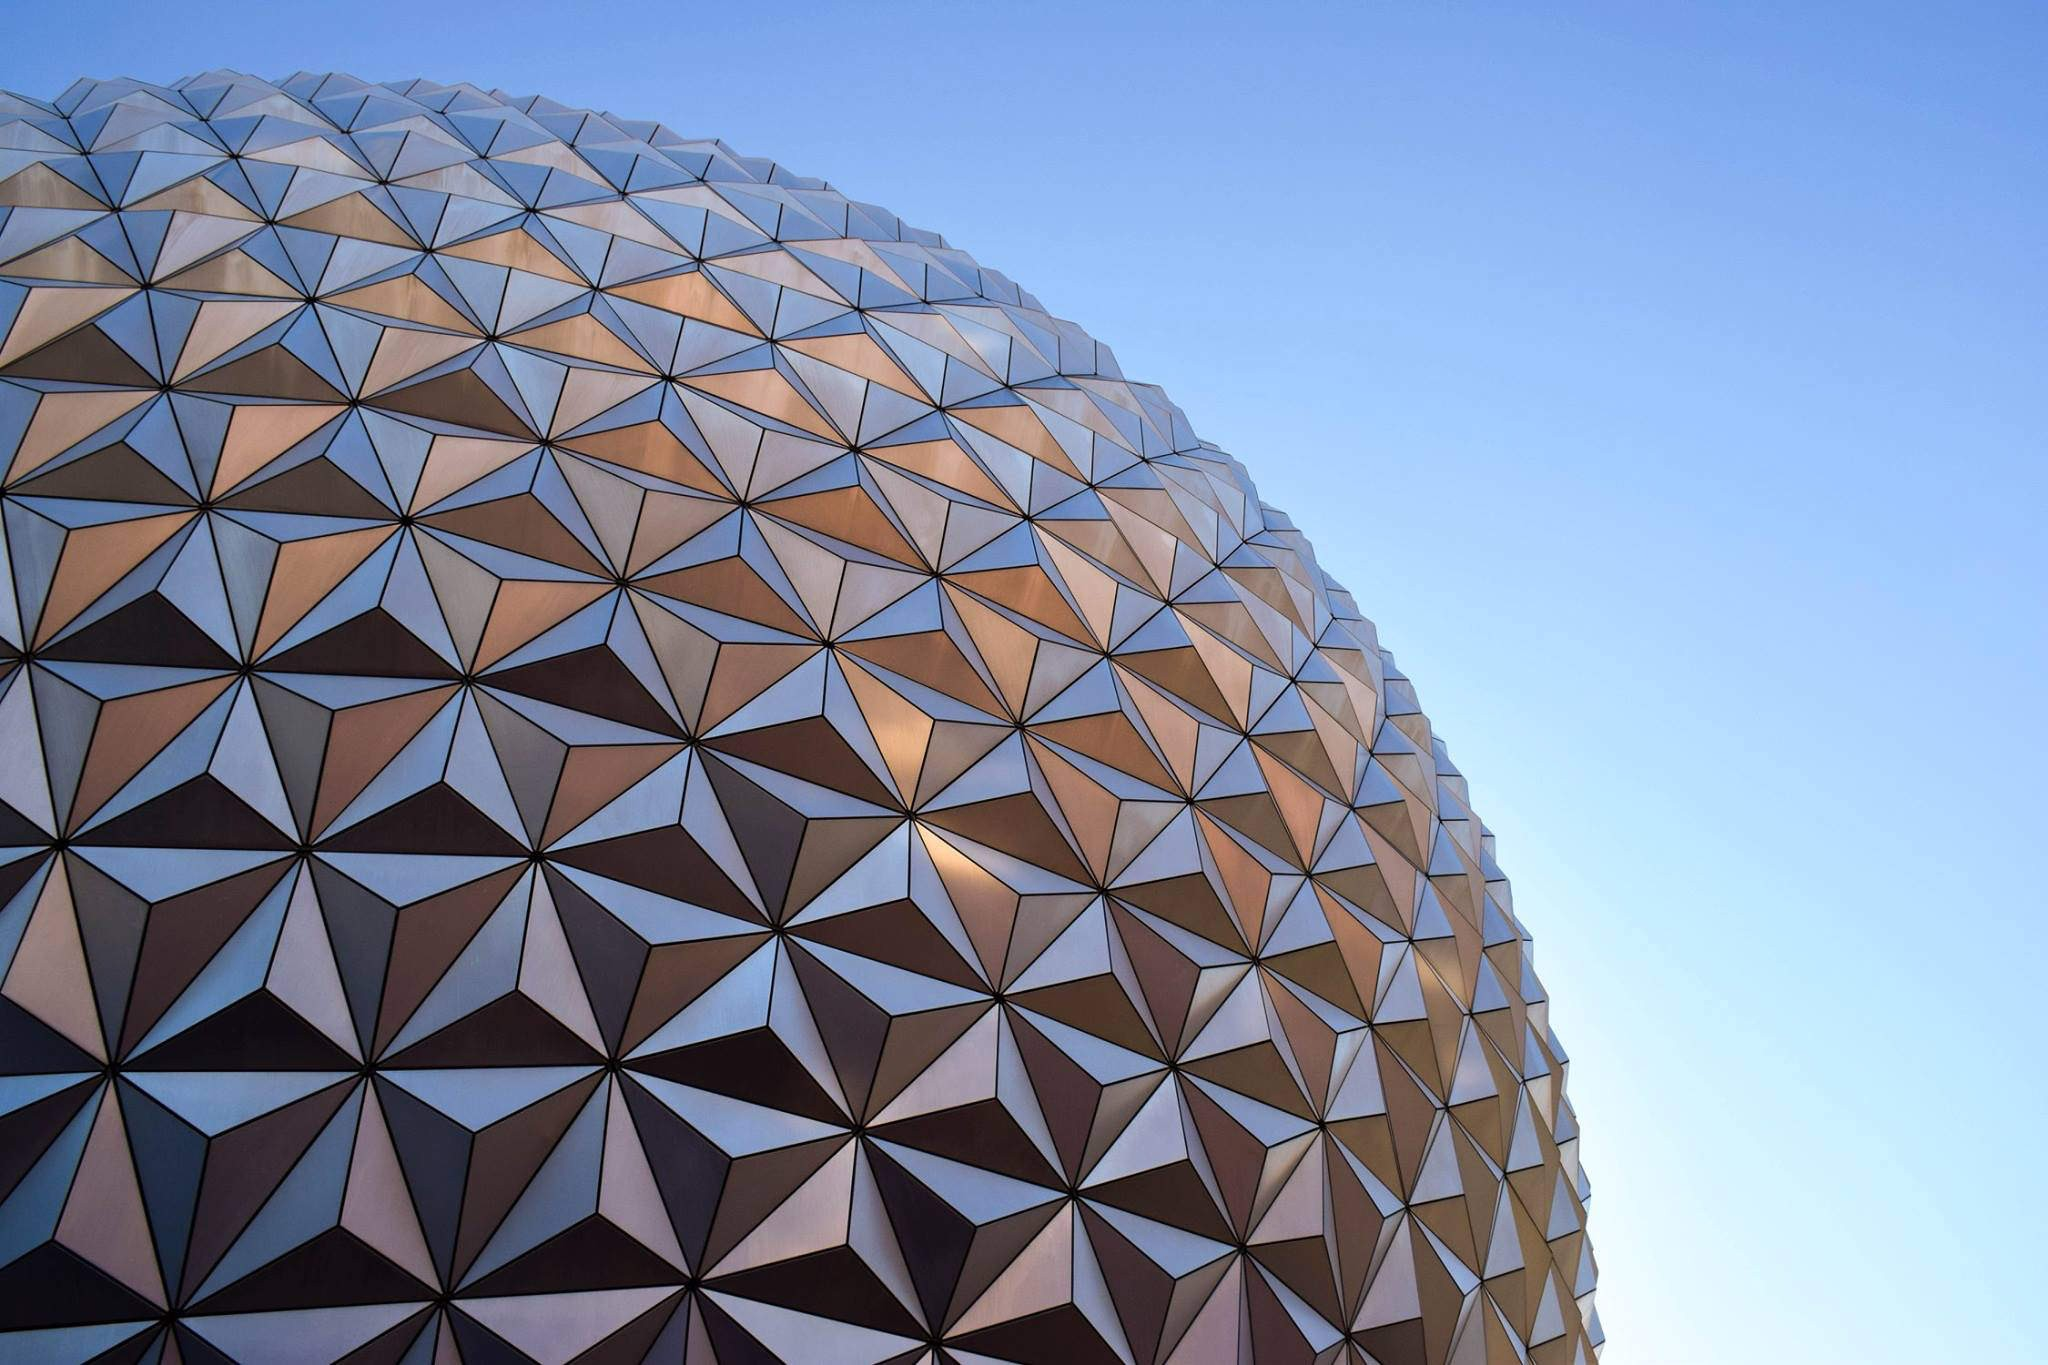 523946 clear sky architecture geometry epcot wallpaper Nature 2048x1365